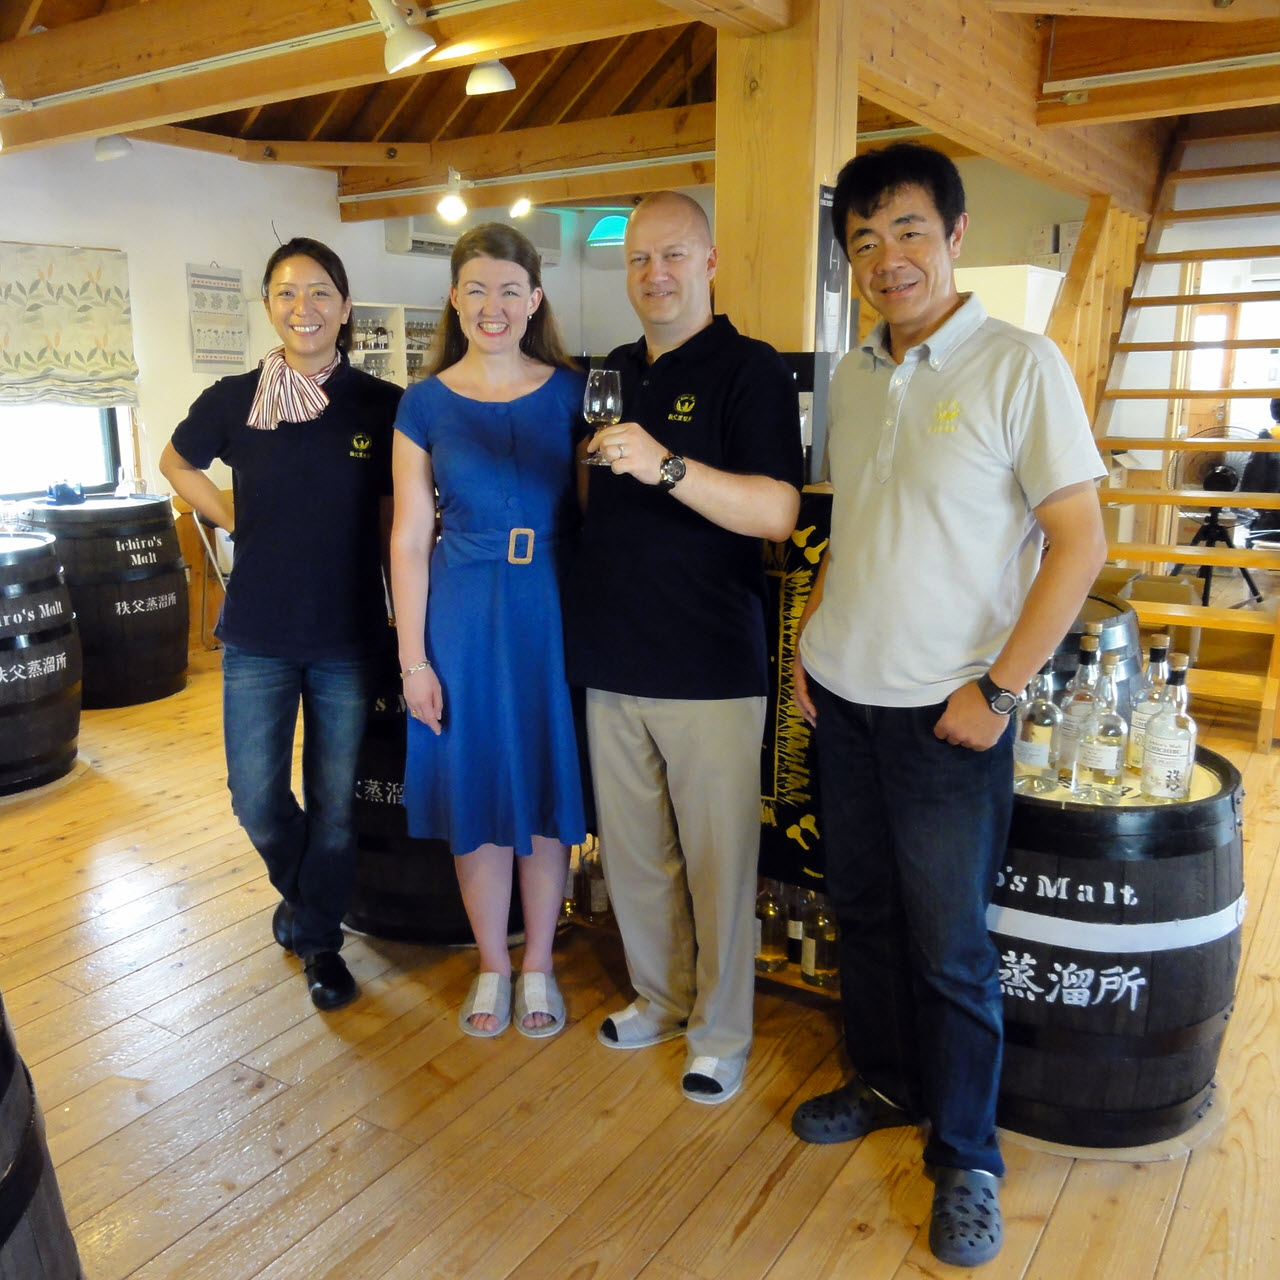 Visiting Chichibu Distillery - image 7